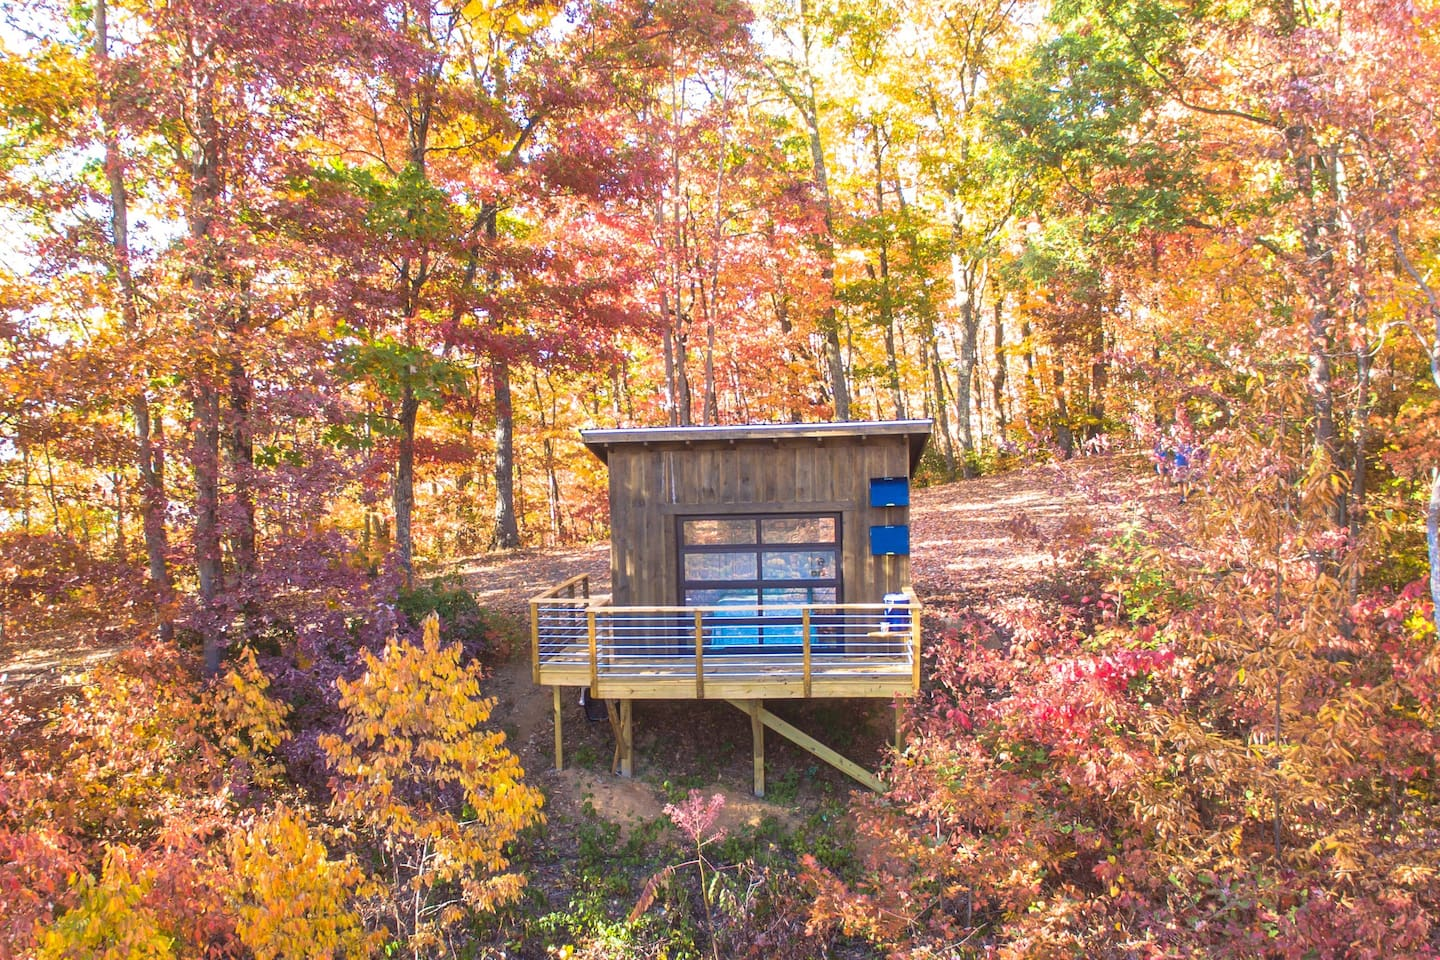 small wooden cabin surrounded by autumn trees cabins in the USA